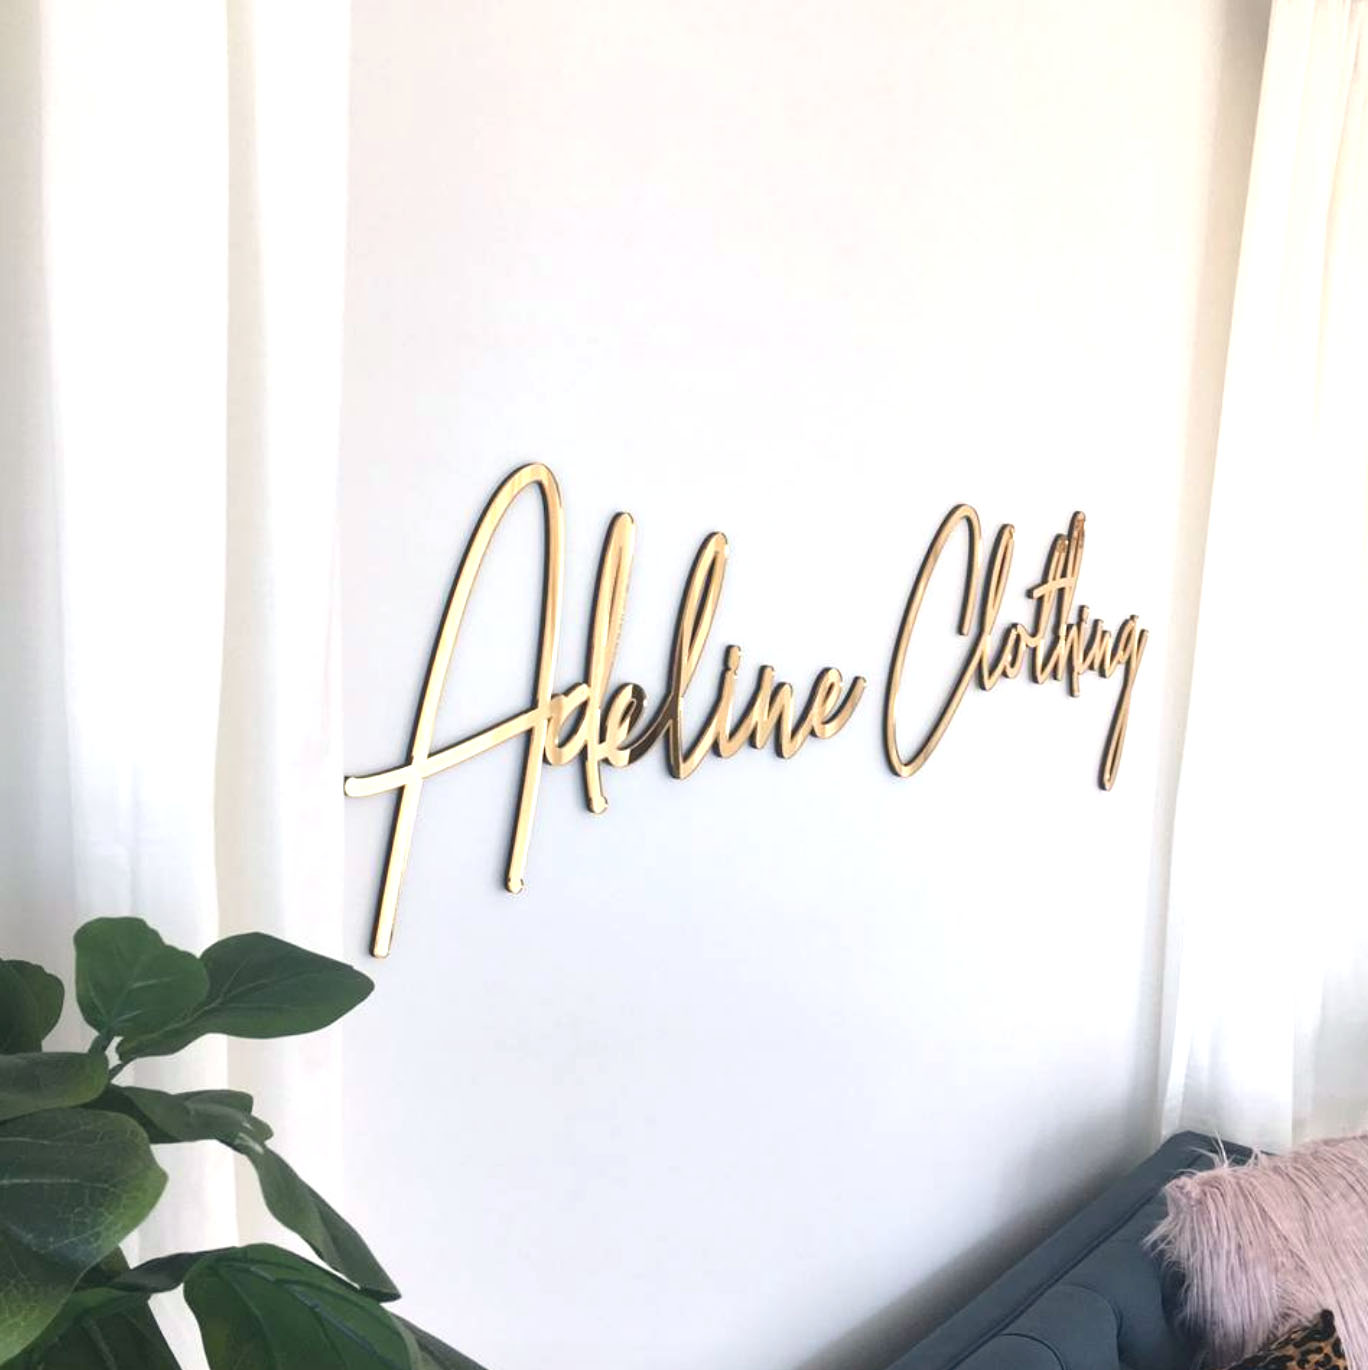 A 6 foot long mirrored business sign for a clothing company.